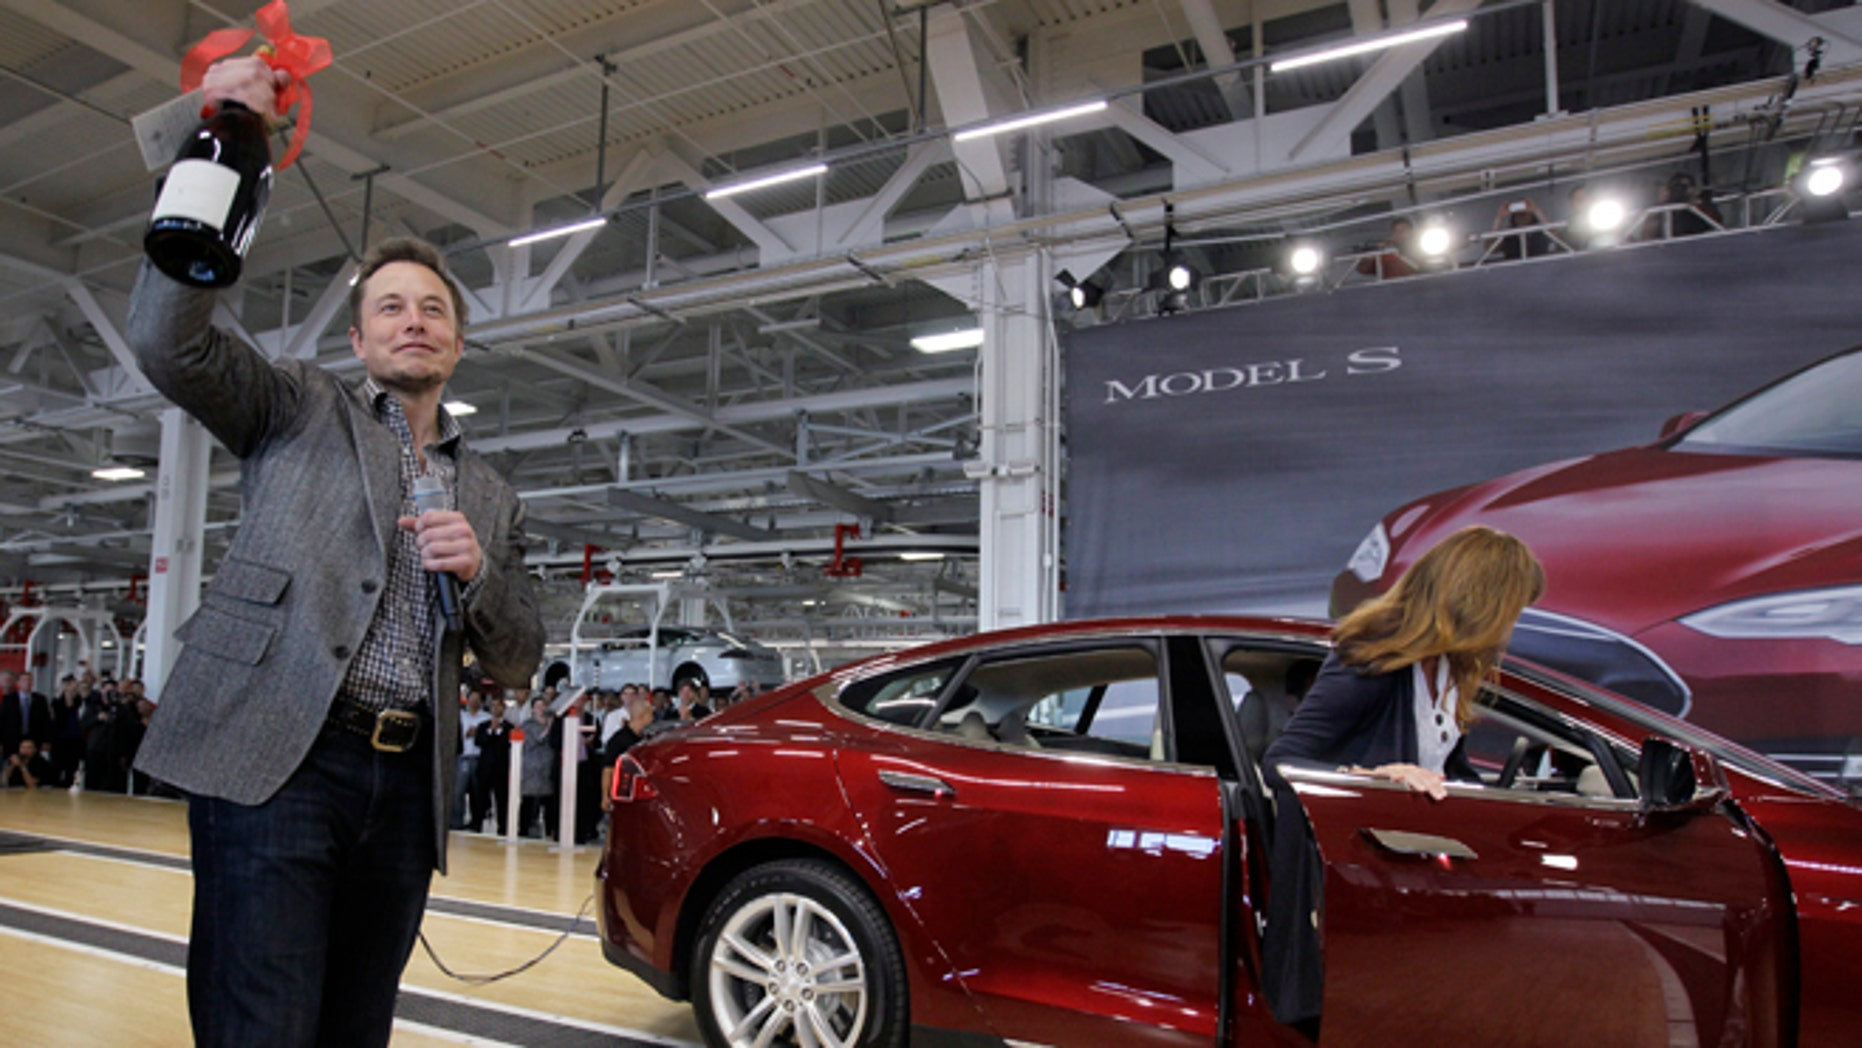 FILE - In this June 22, 2012 file photo, Tesla Motors Inc. CEO Elon Musk holds up a bottle of wine given as a gift from one of their first customers, right, during a rally at the Tesla factory in Fremont, Calif. Tesla Motors says it is preparing a site near Reno, Nevada, as a possible location for its new battery factory, but is still evaluating other locations. (AP Photo/Paul Sakuma, File)